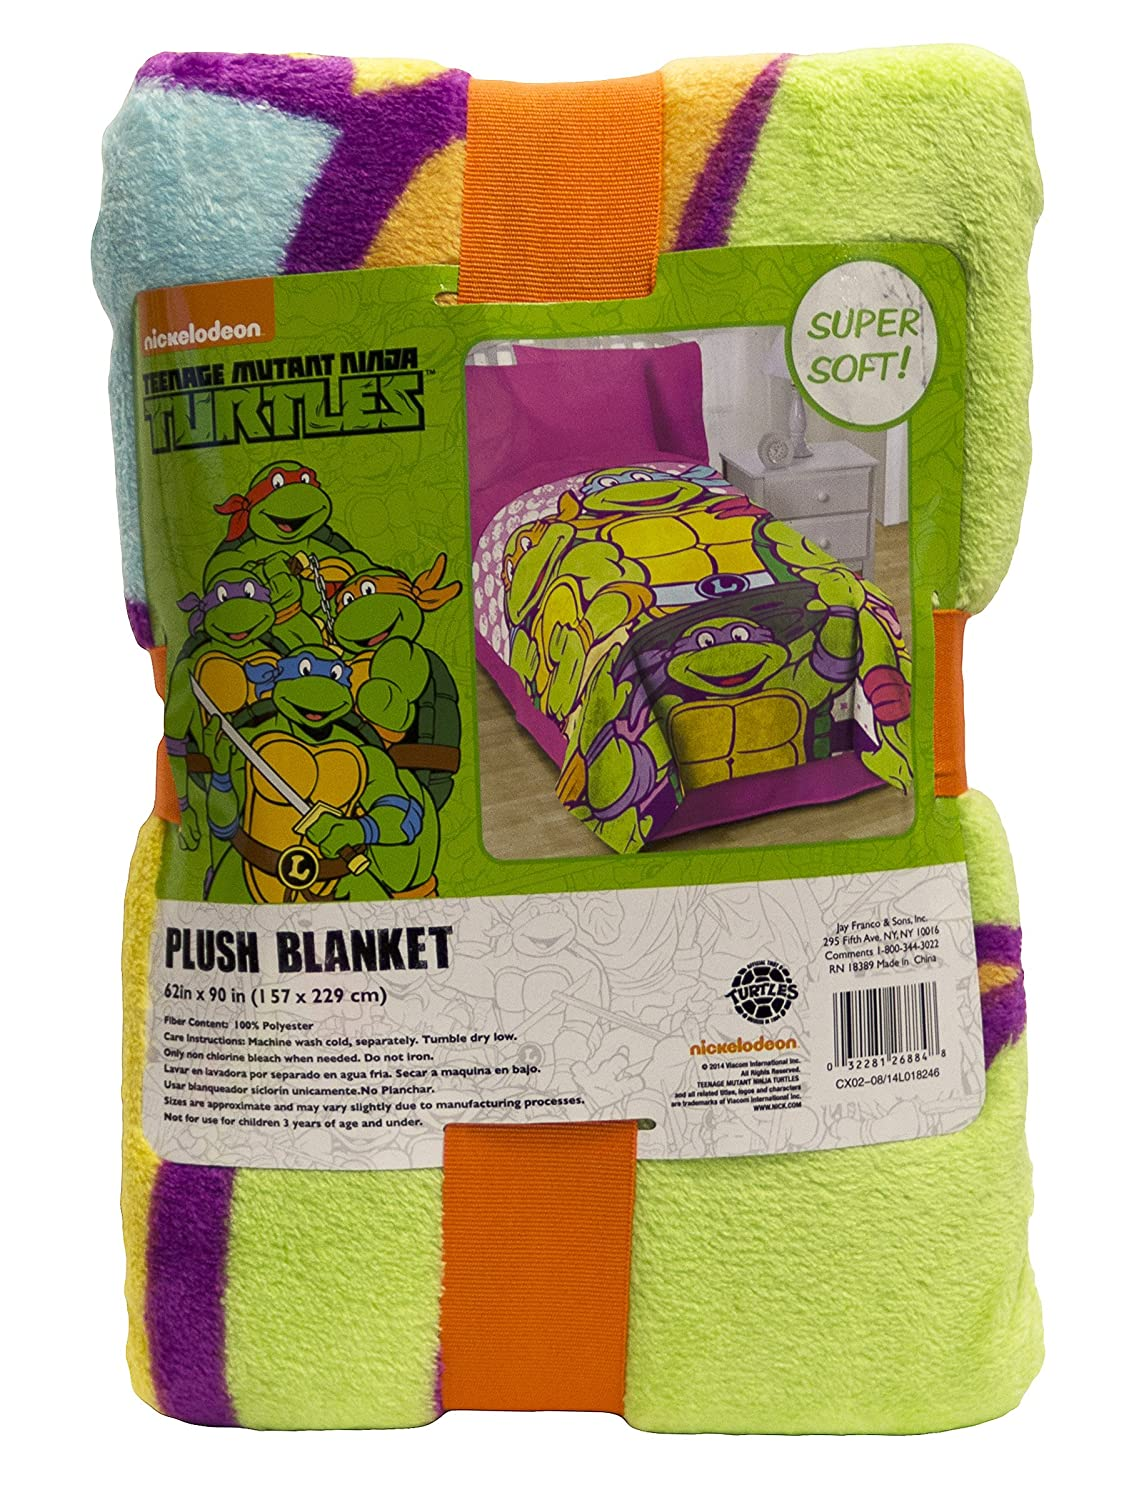 Nickelodeon Teenage Mutant Ninja Turtles I Love TMNT Throw Blanket for Girls Jay Franco and Sons Inc JF26884WCCD